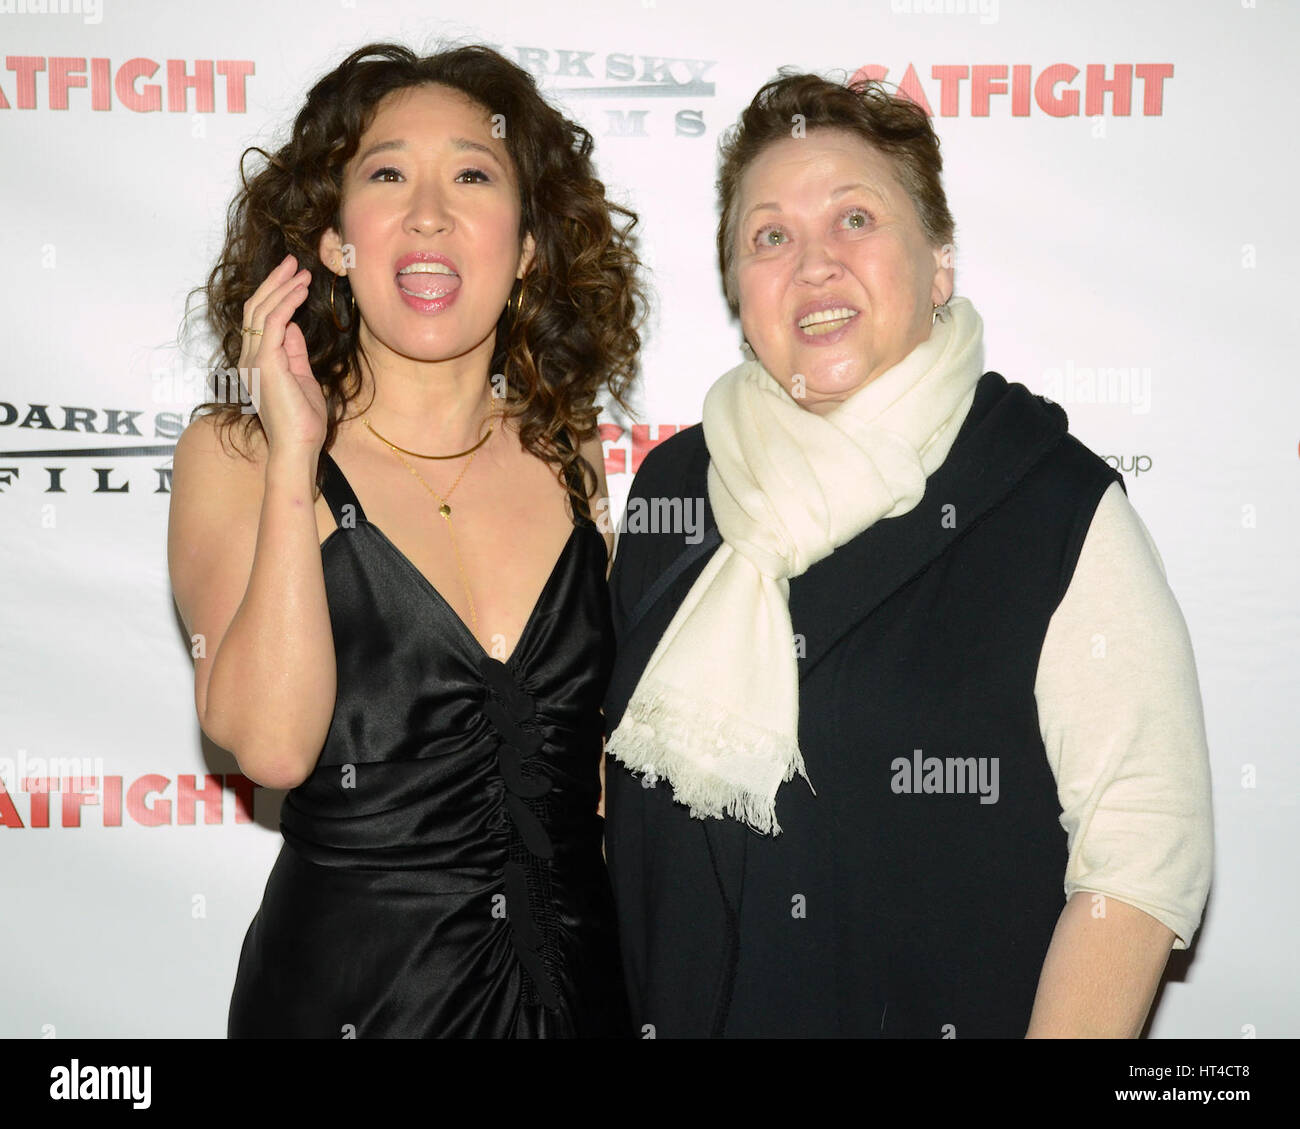 Sandra Oh and Amy Hill attends the premiere of Dark Sky Films' 'Catfight' at Cinefamily on March 2, - Stock Image